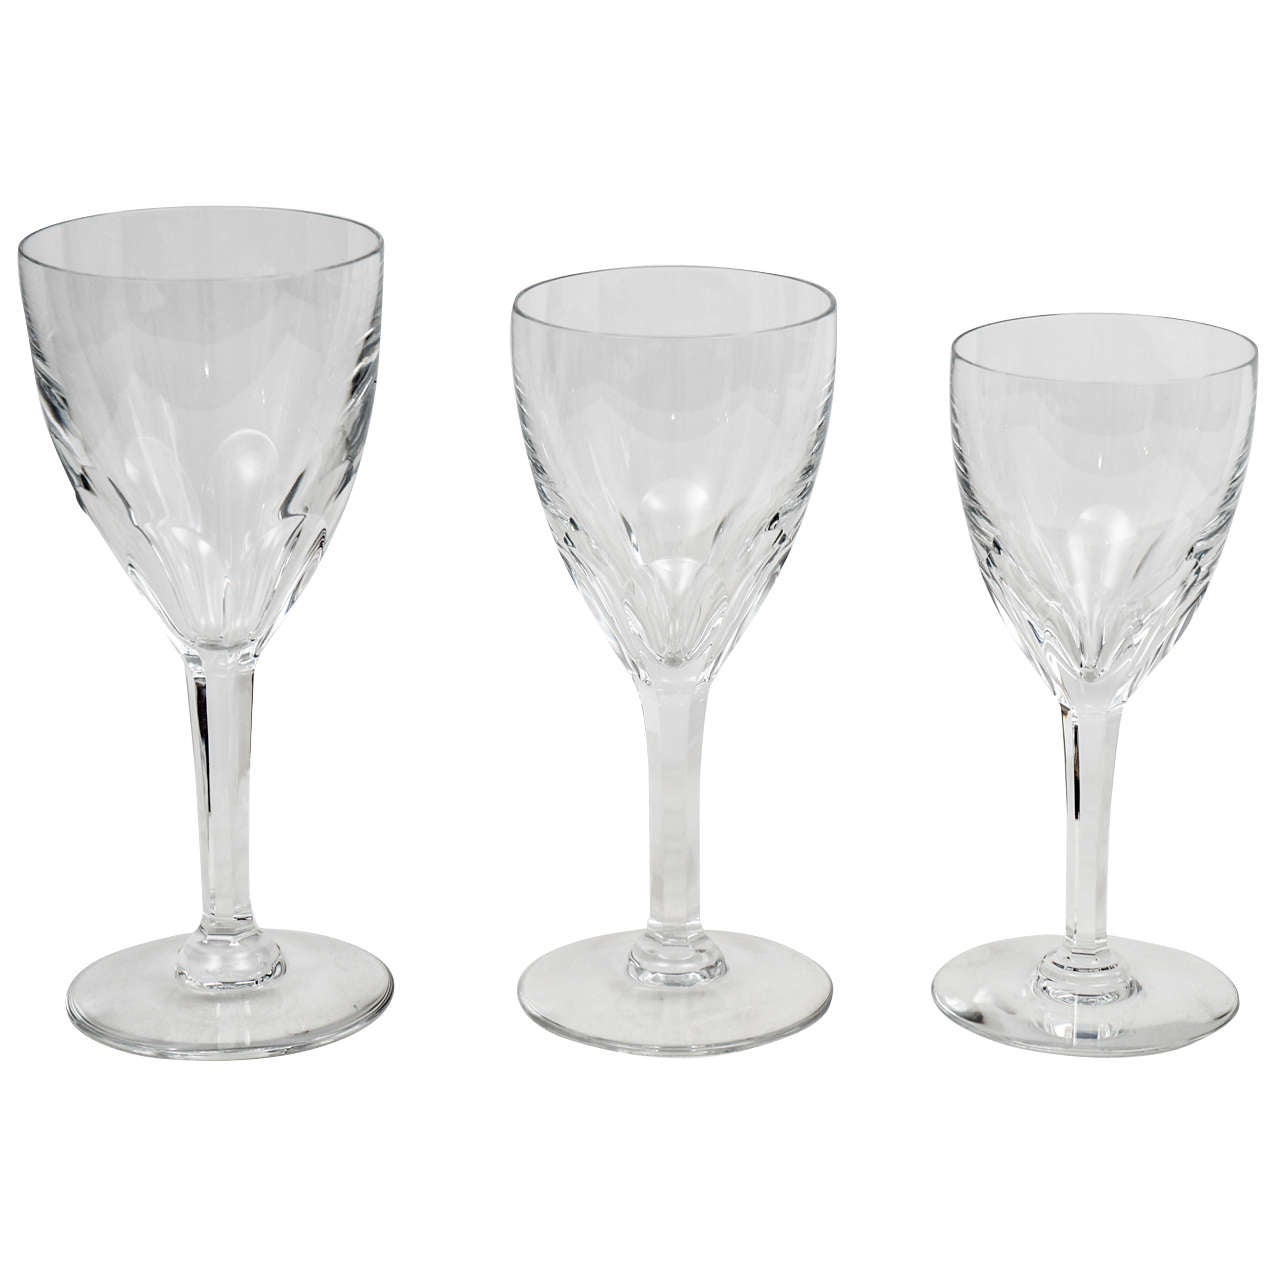 Baccarat wine glass patterns casino jeux argent reel